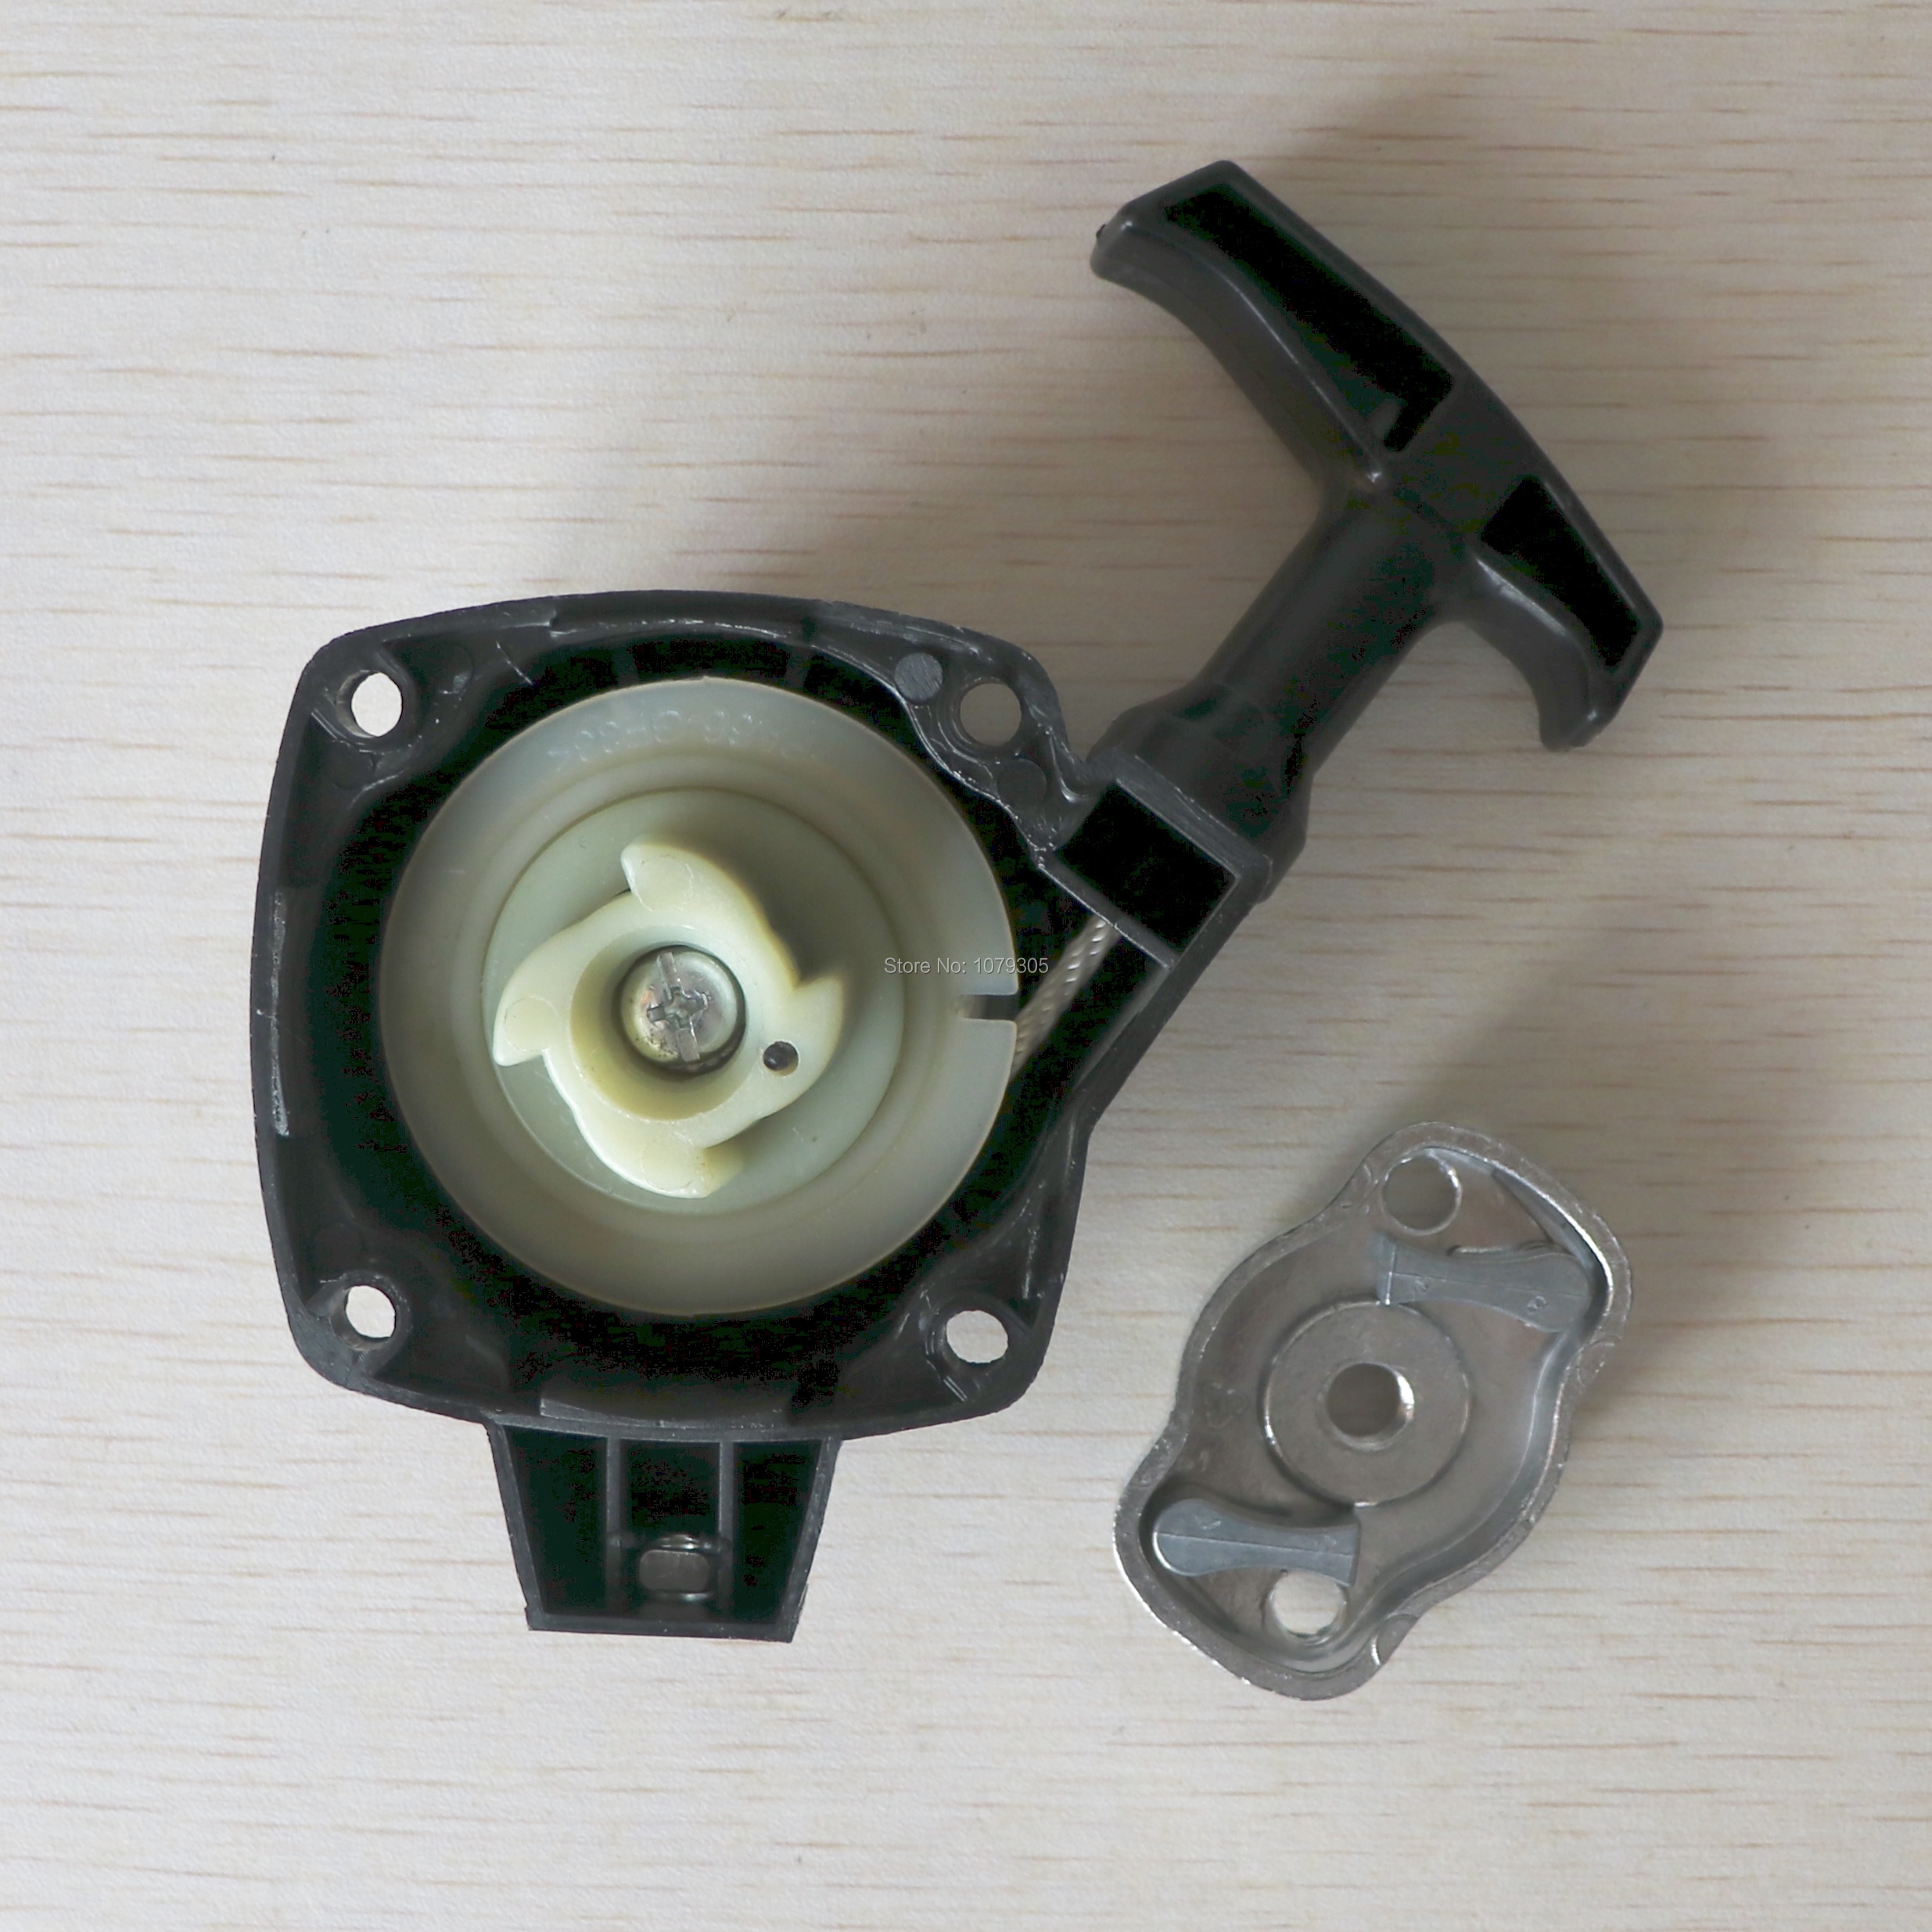 Recoil Easy Starter With Pulley Plate Fit Brush Cutter Garden Tool 26CC 1E34F Grass Strimmer Engine